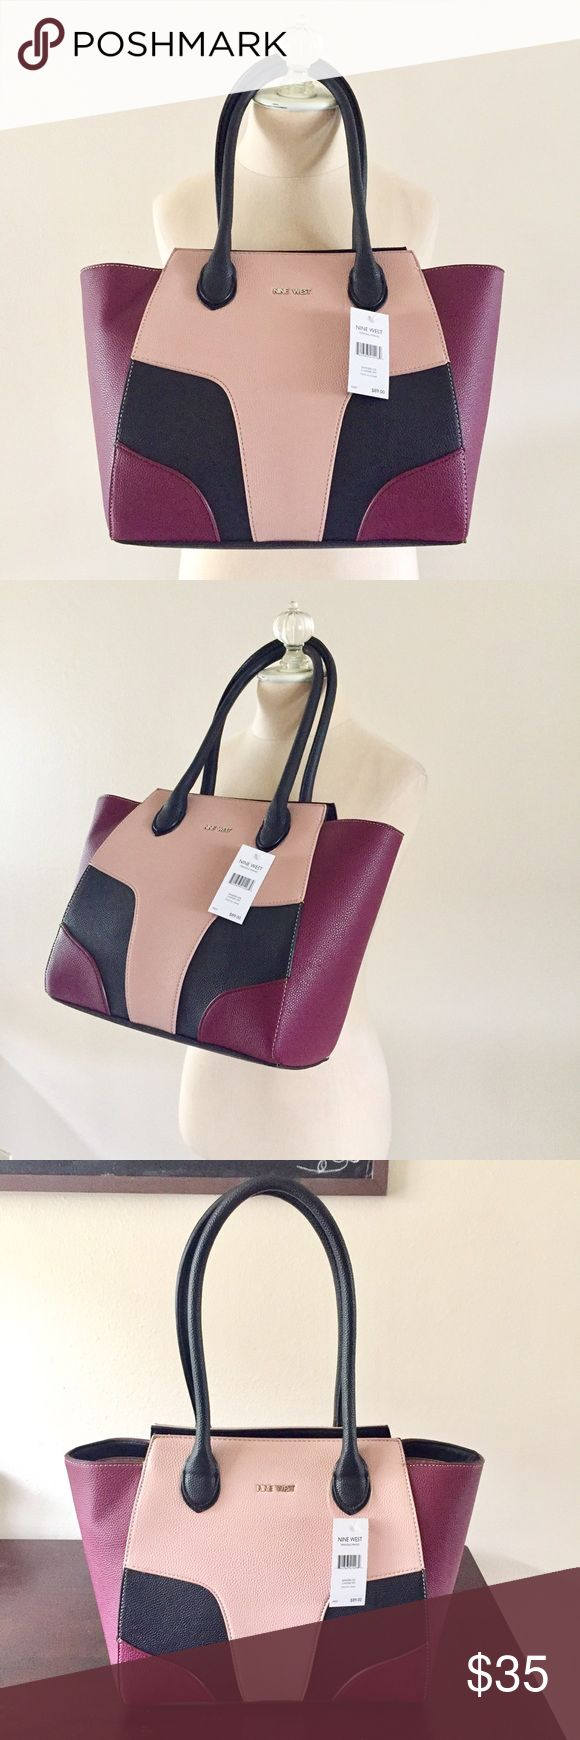 Pink and Plum Nine West Shoulder Bag NWT Brand New Nine West purse features pale pink and plum color block pattern. Gorgeous feminine, chic colors. 16 x 11.5 x 6 inch dimensions make it the perfect size tote! Nine West Bags Shoulder Bags